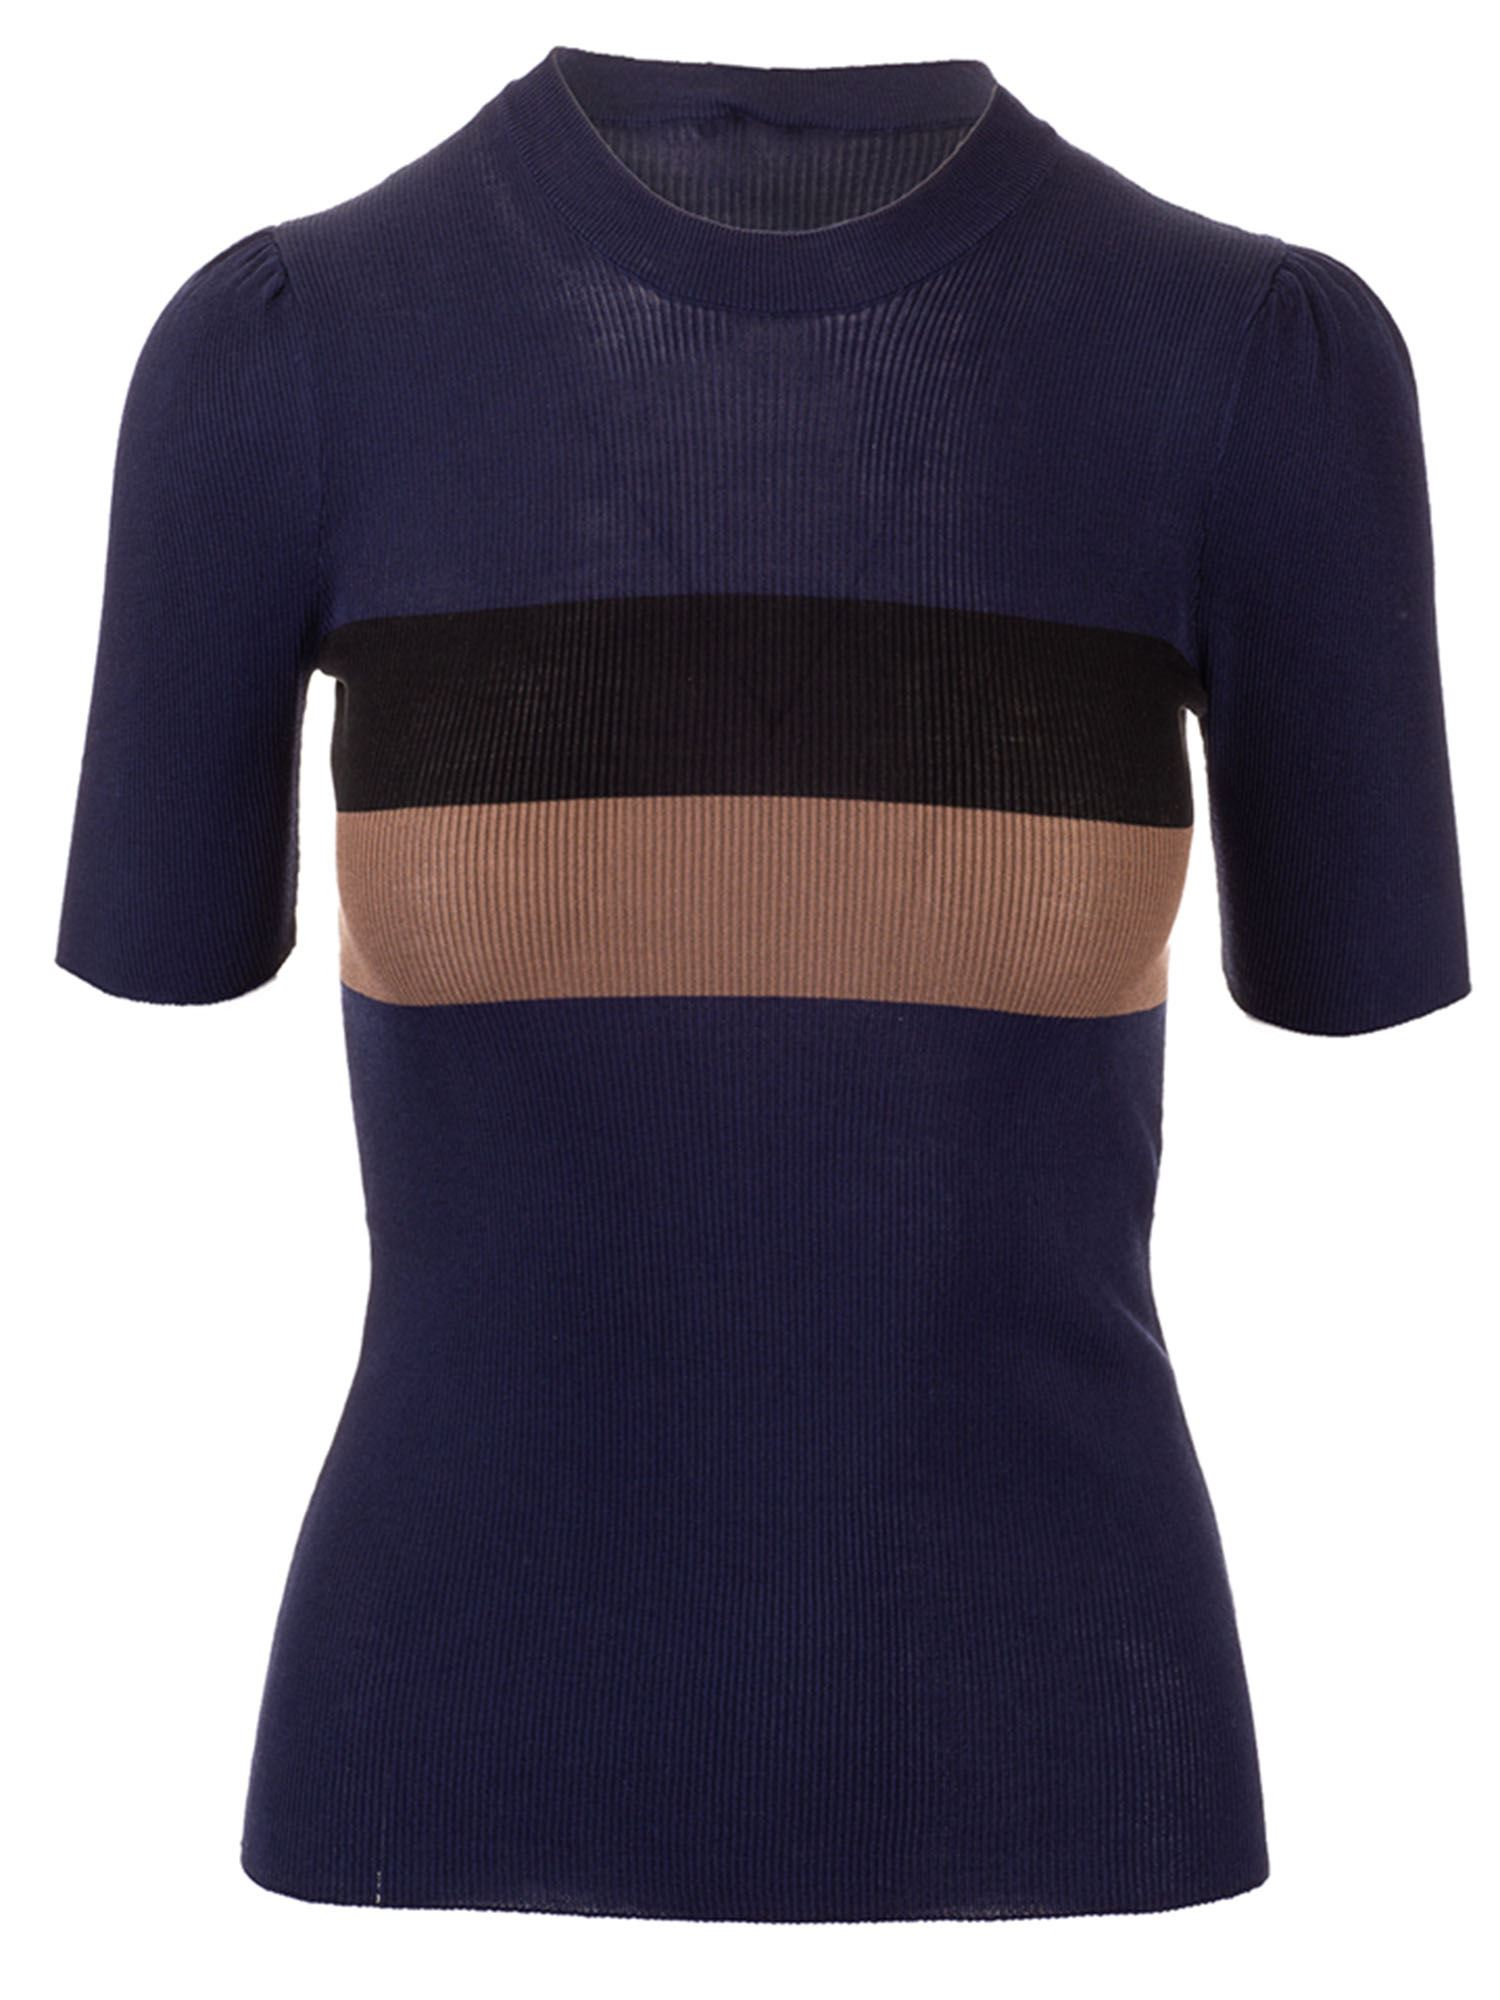 Fendi STRIPED TOP IN BLUE